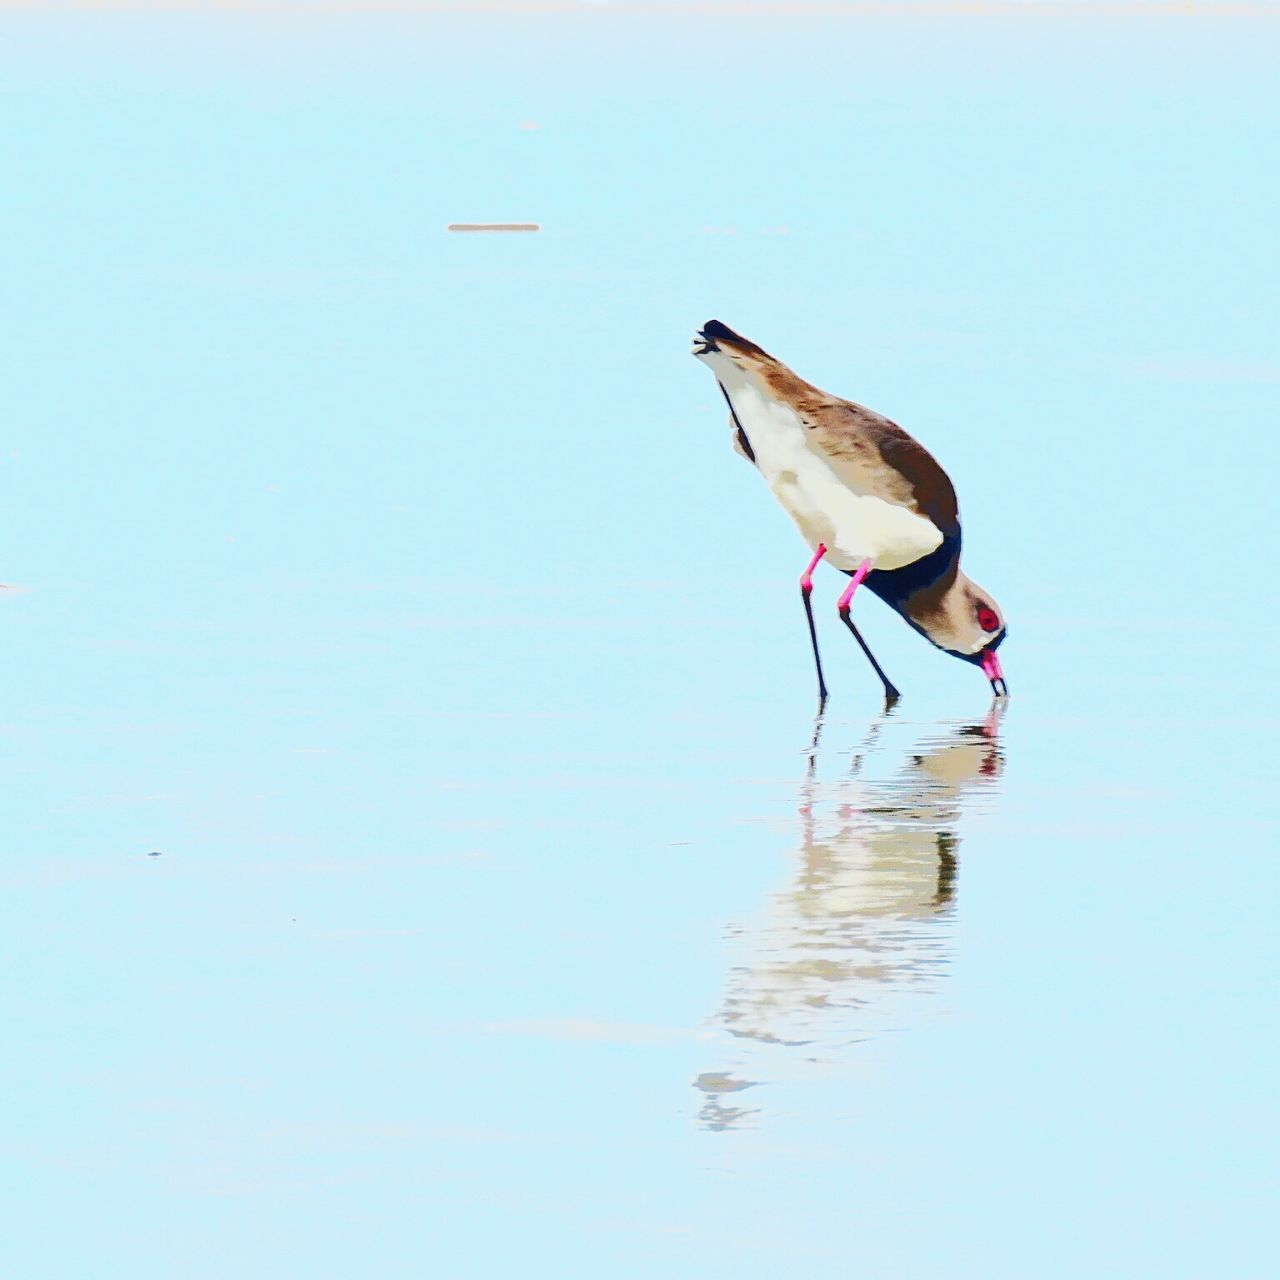 one animal, bird, animals in the wild, animal themes, animal wildlife, water, nature, waterfront, day, no people, outdoors, lake, beauty in nature